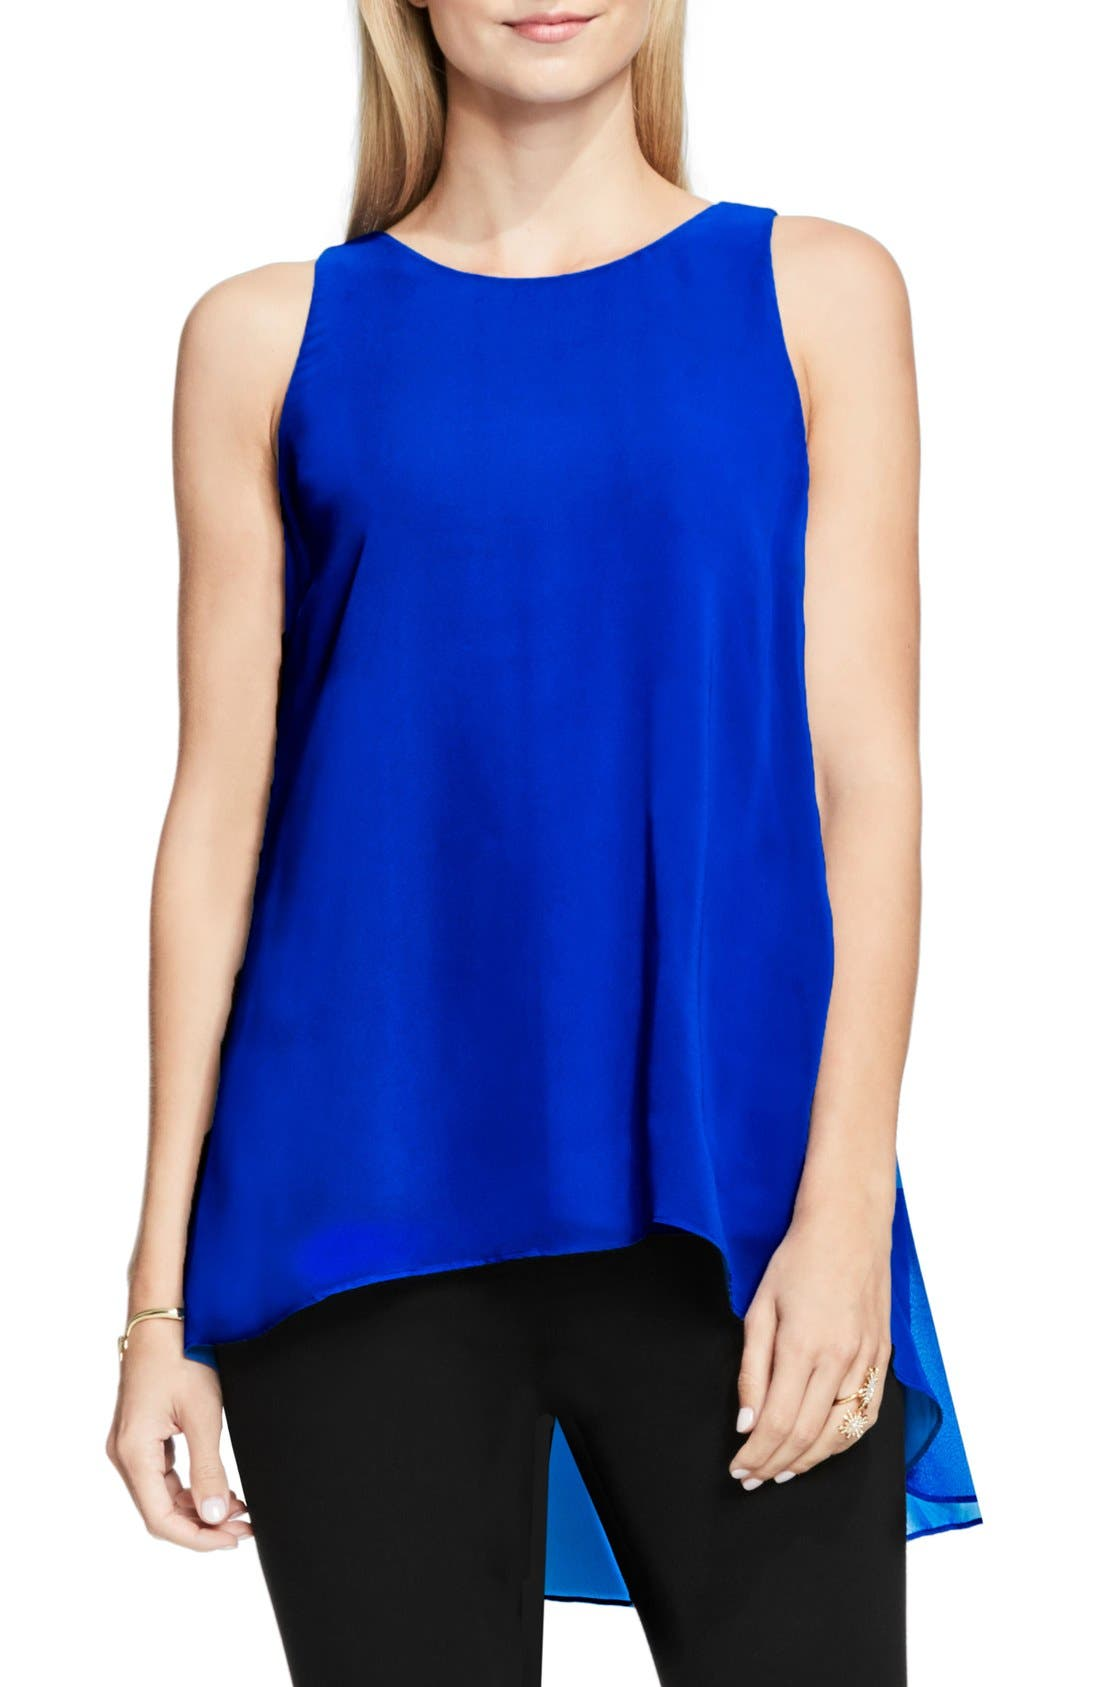 Main Image - Vince Camuto Sleeveless Crepe High/Low Top (Petite)